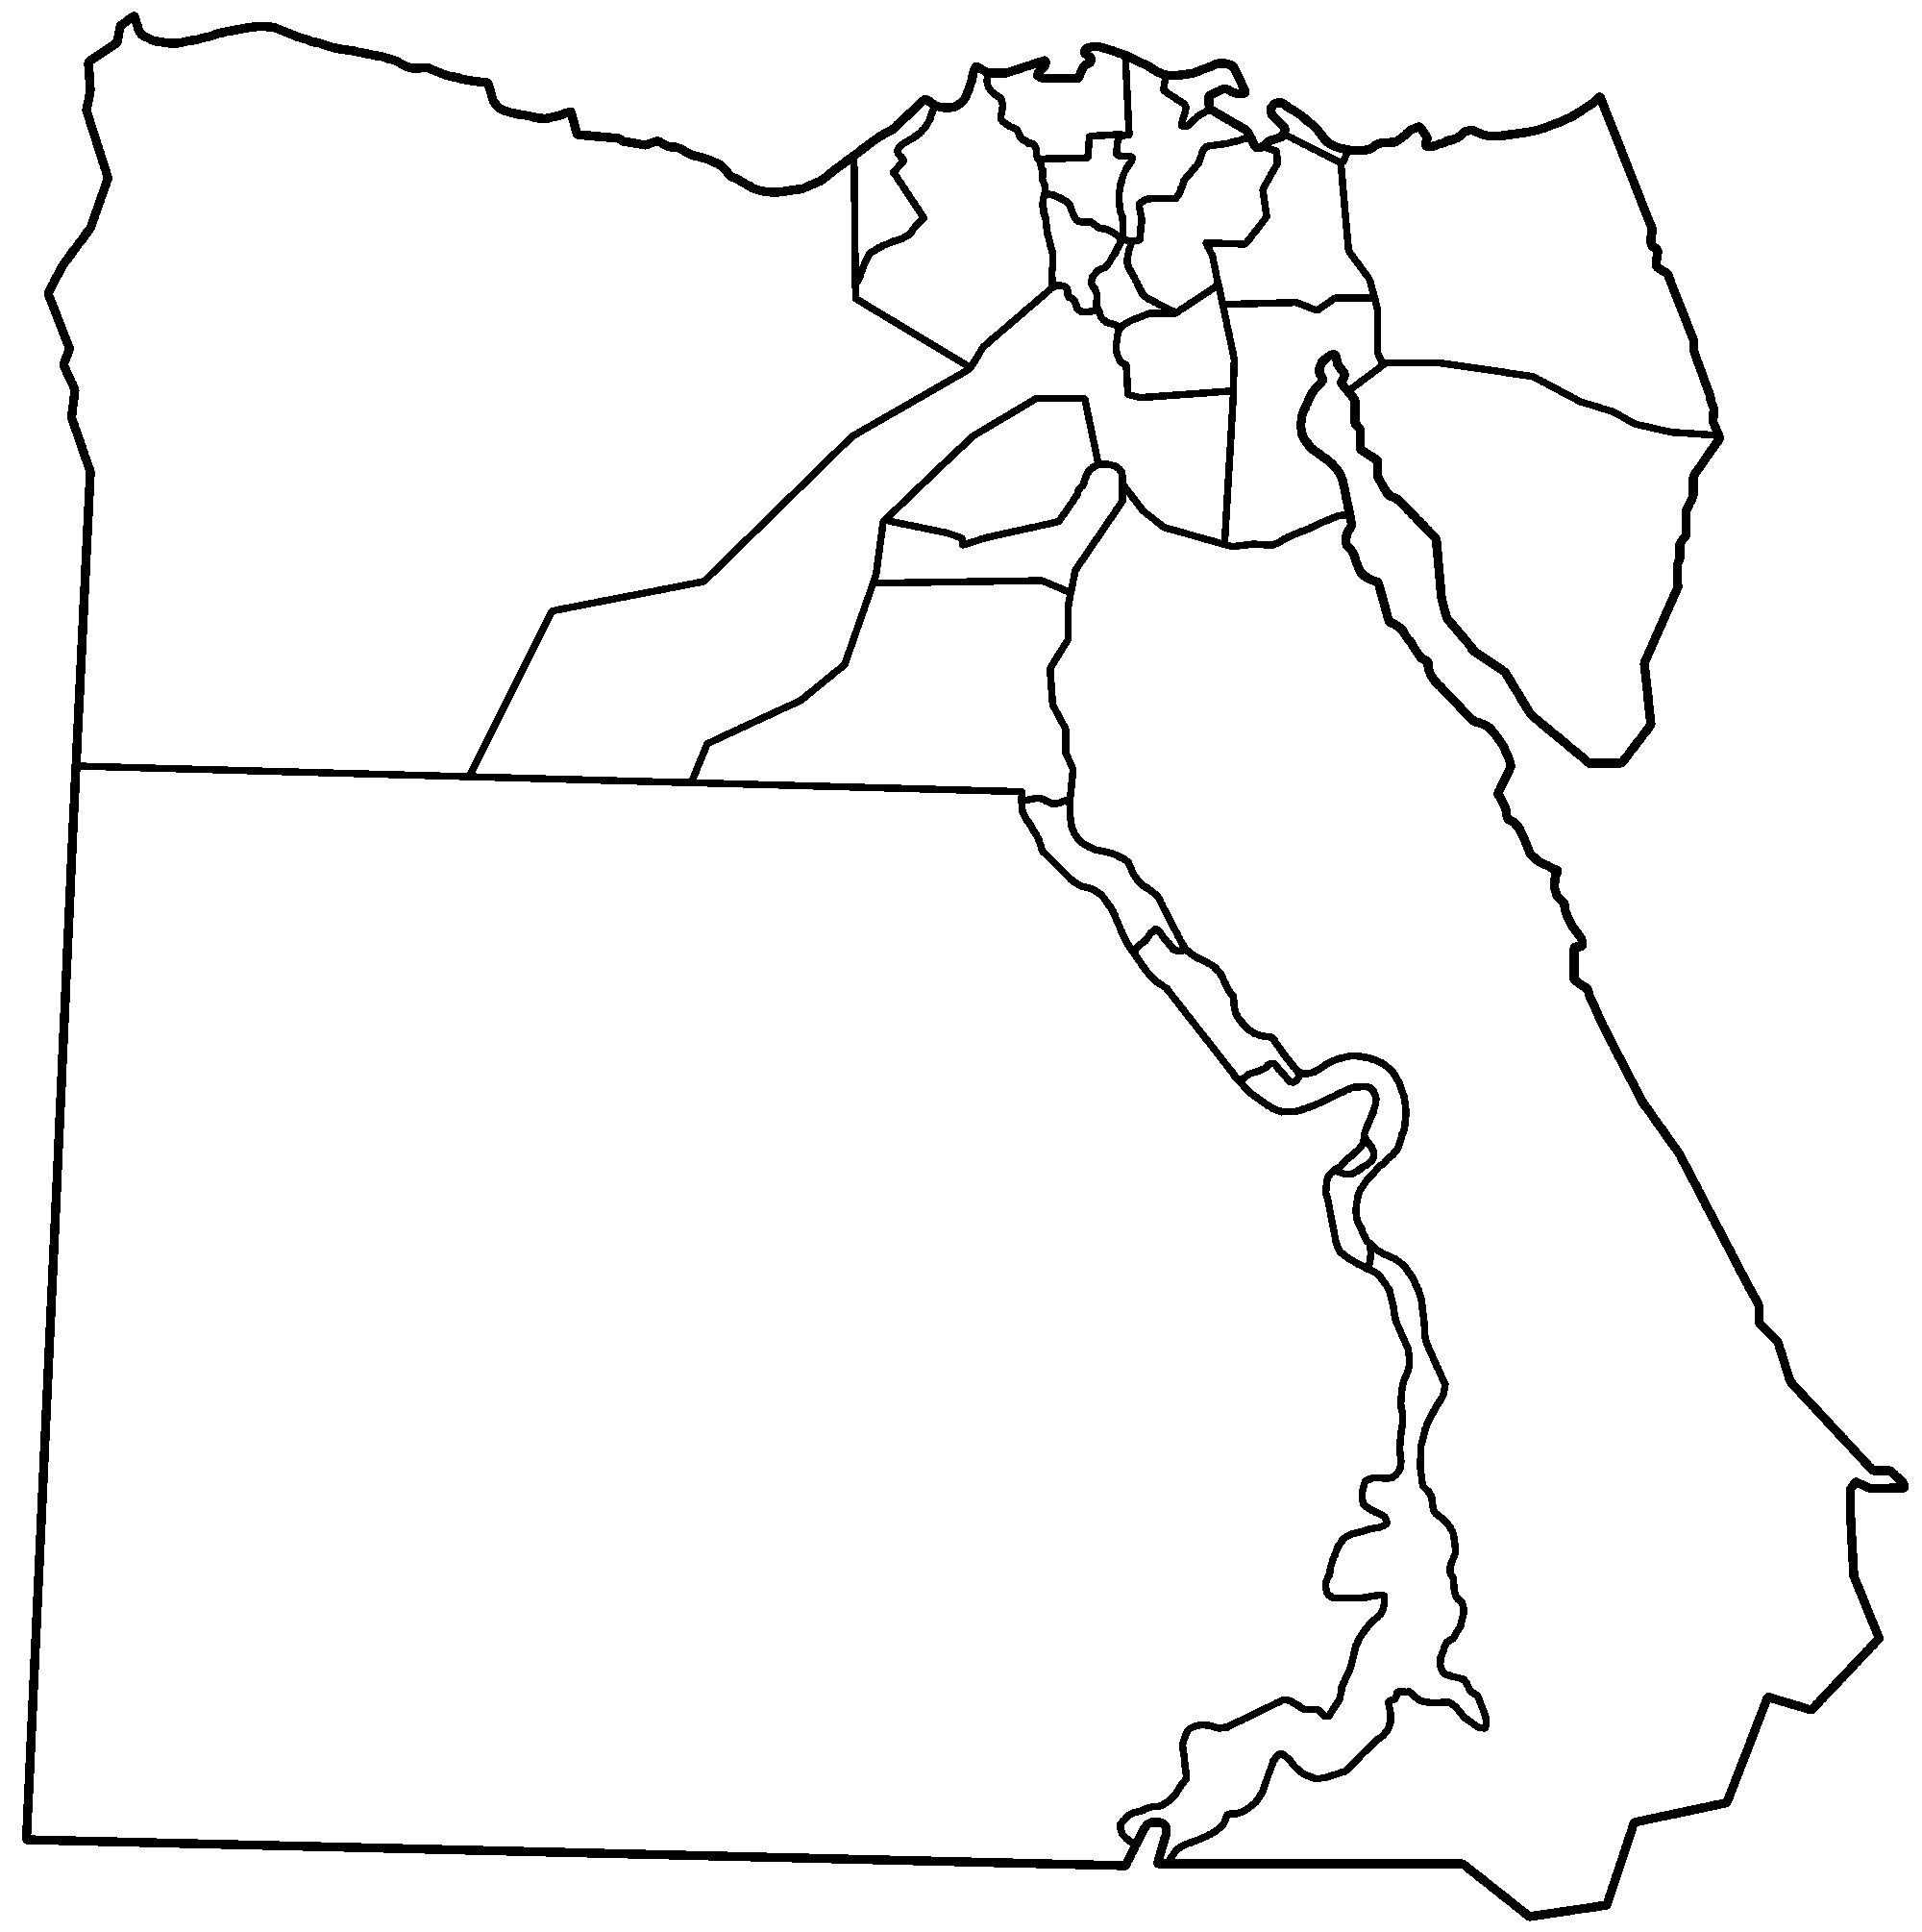 2000x2010 Fileegypt Governorates Blank.png